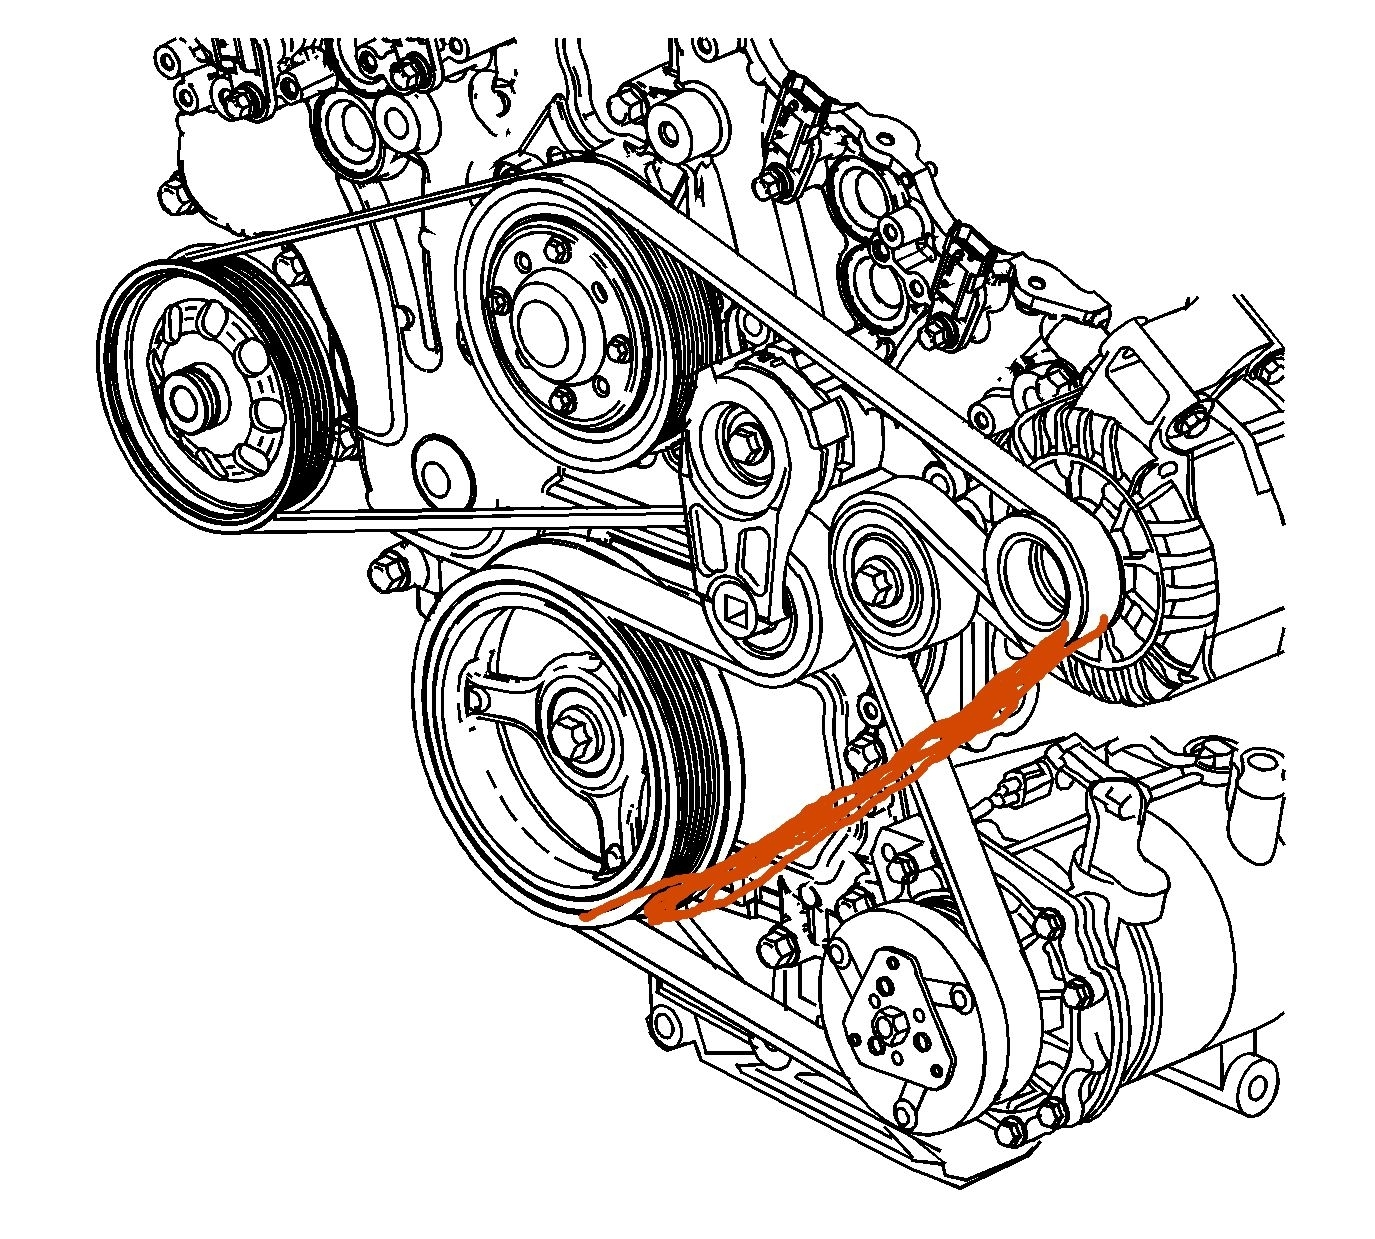 Serpentine Belt To Bypass A C I Would Like To Know If